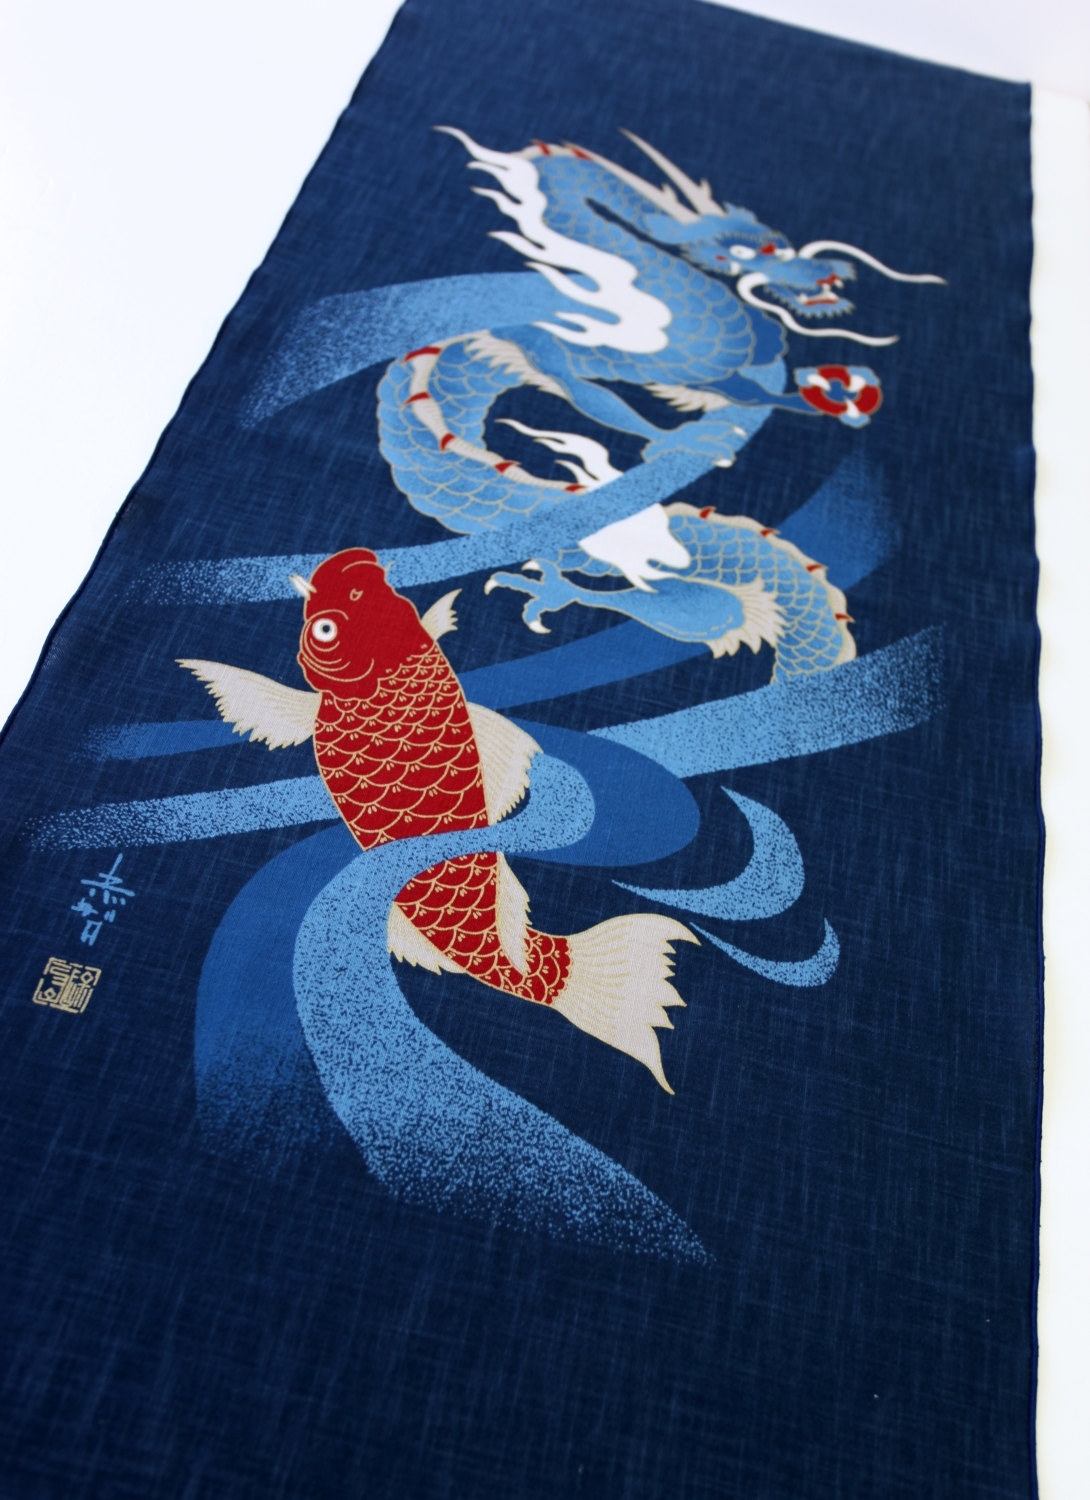 Japanese Indigo Blue Noren Panel, Geisha Noren Fabric Curtain With Regard To Latest Japanese Fabric Wall Art (View 5 of 15)